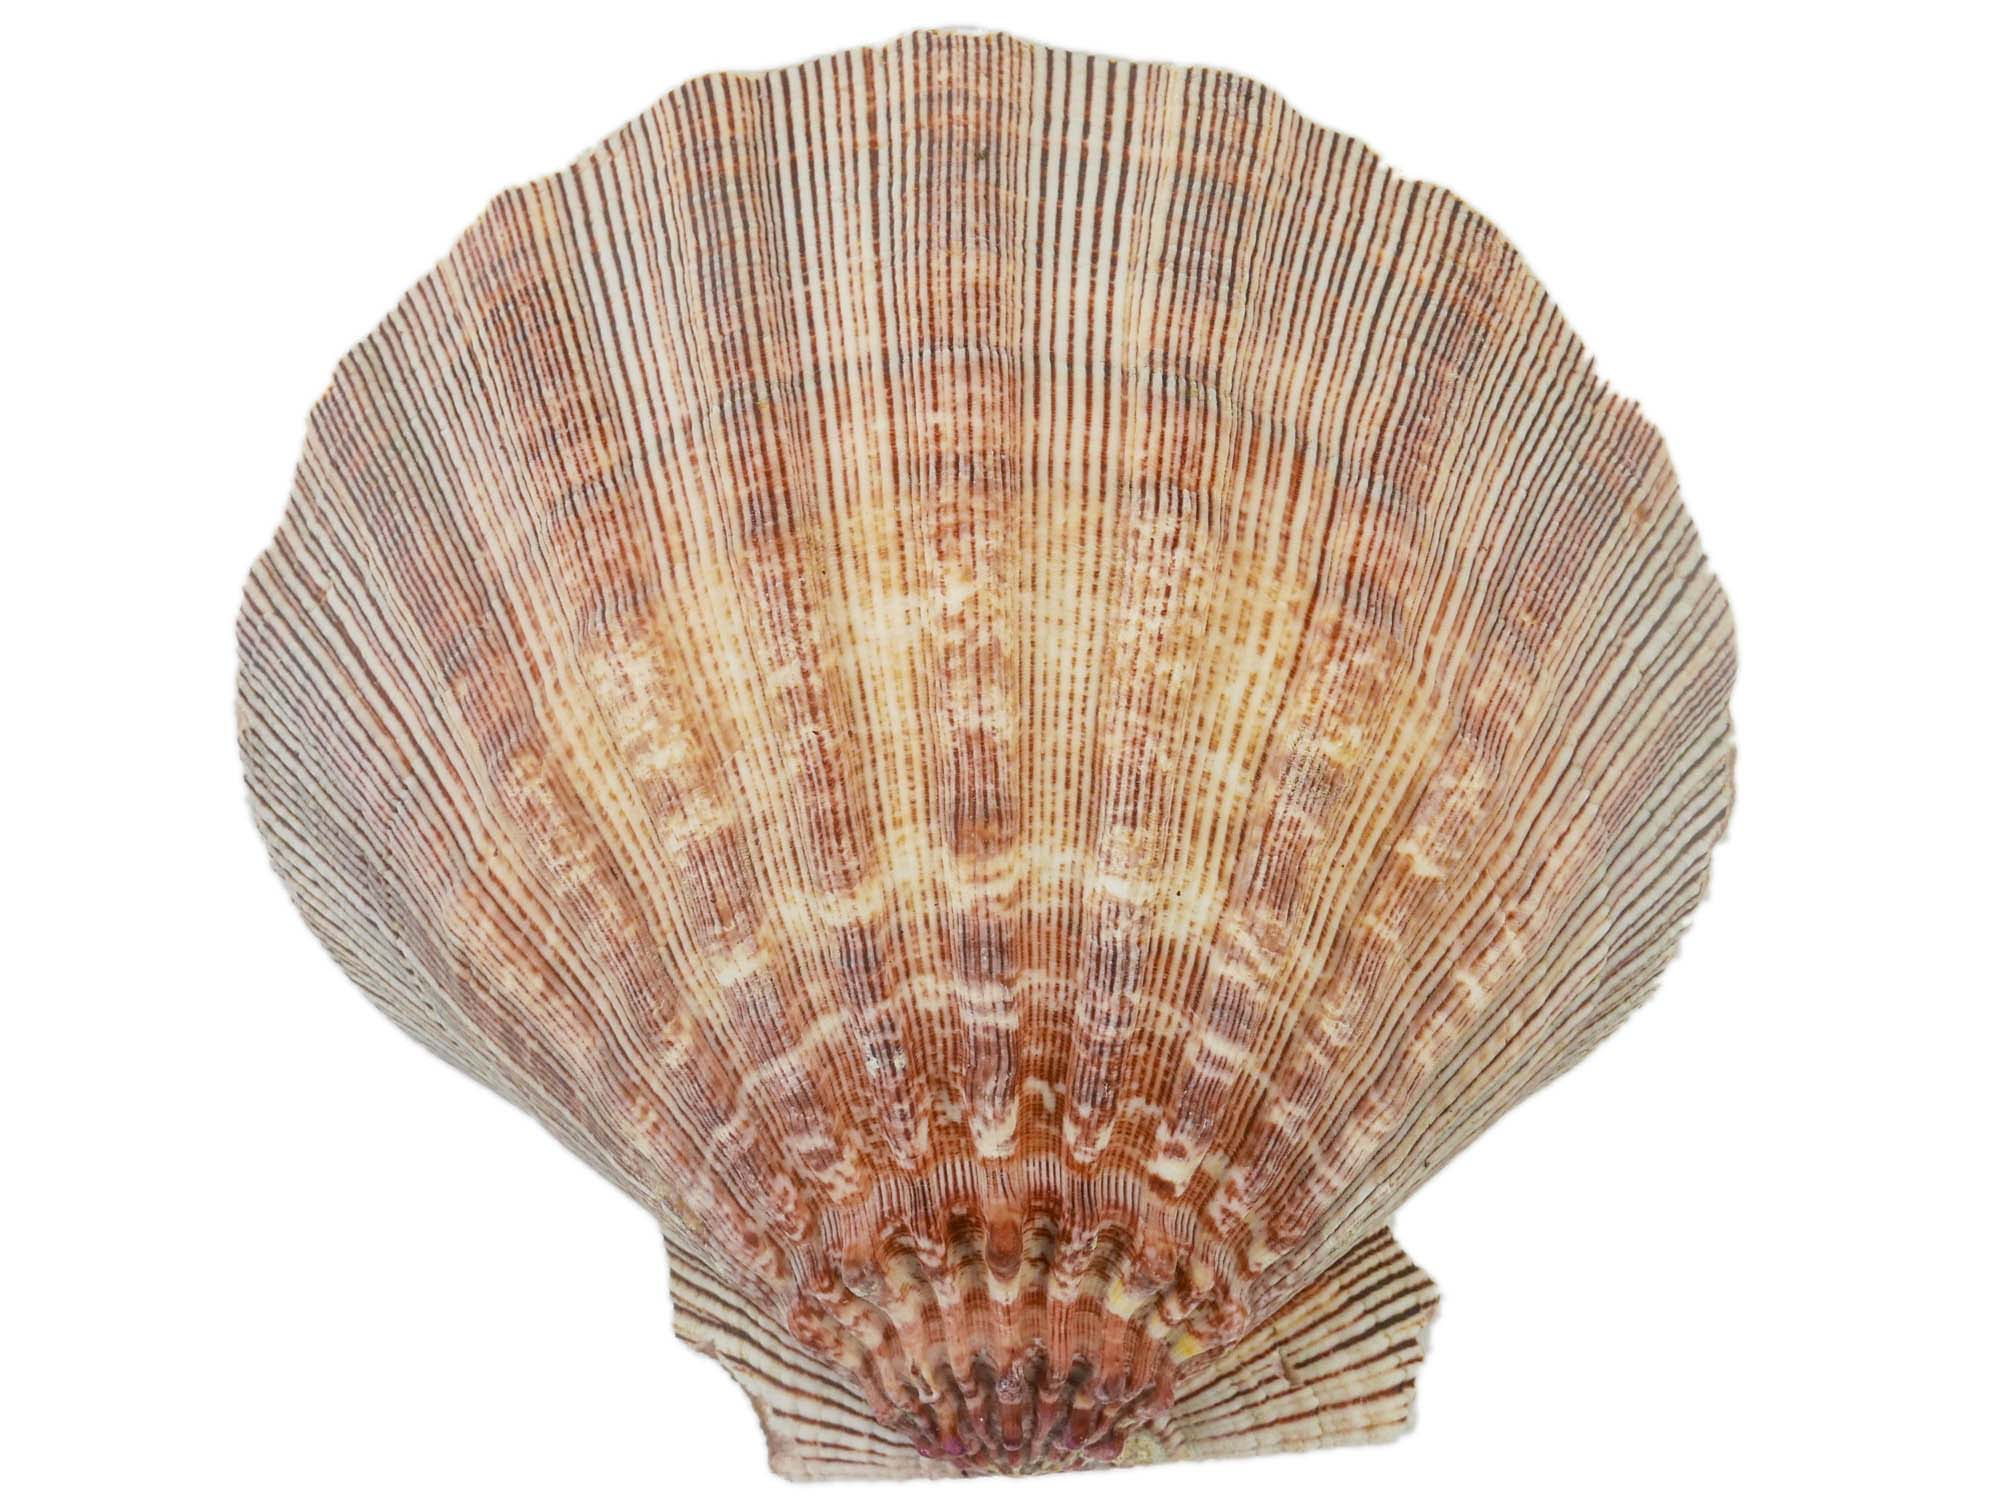 "Lion Paw Scallop Shell (6-7""): Natural Color"